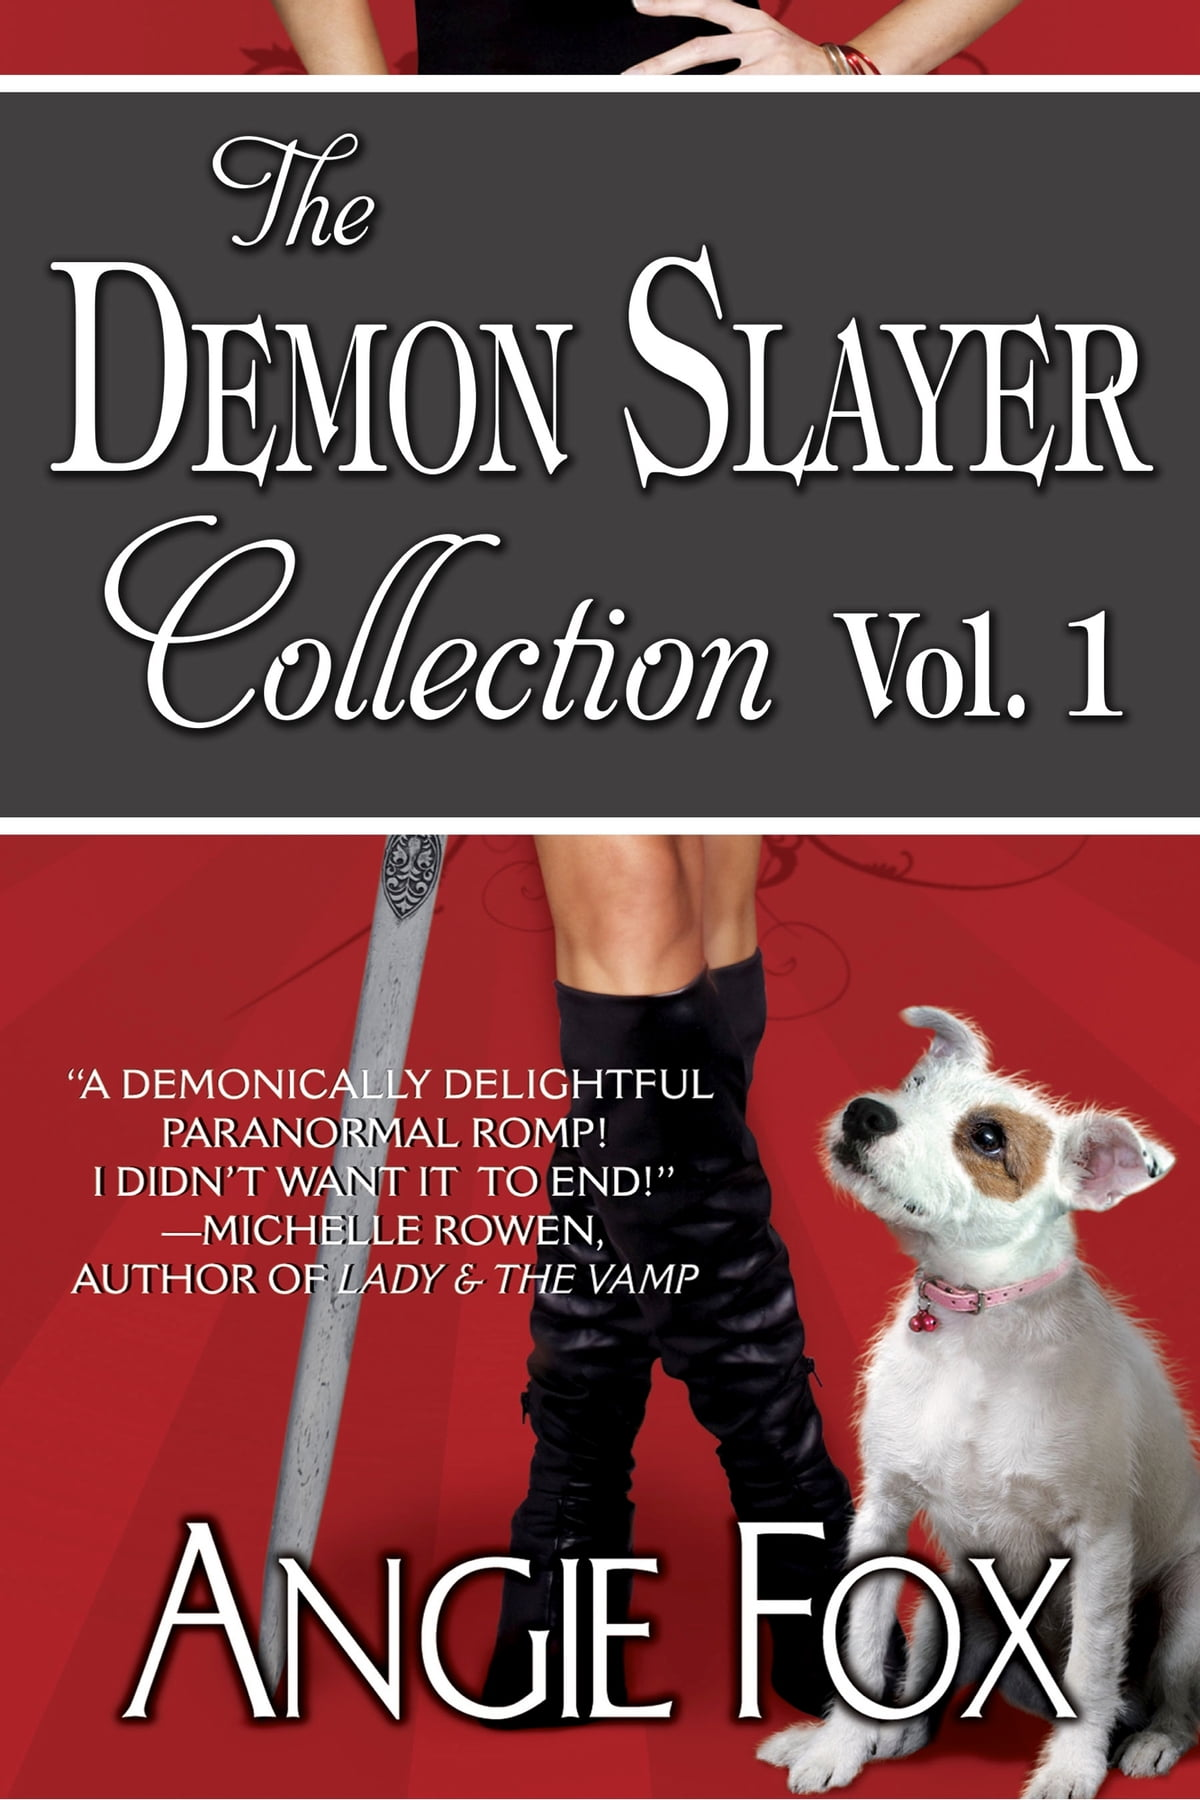 Accidental Demon Slayer Boxed Set Vol I (books 13) Ebook By Angie Fox  1230000116643